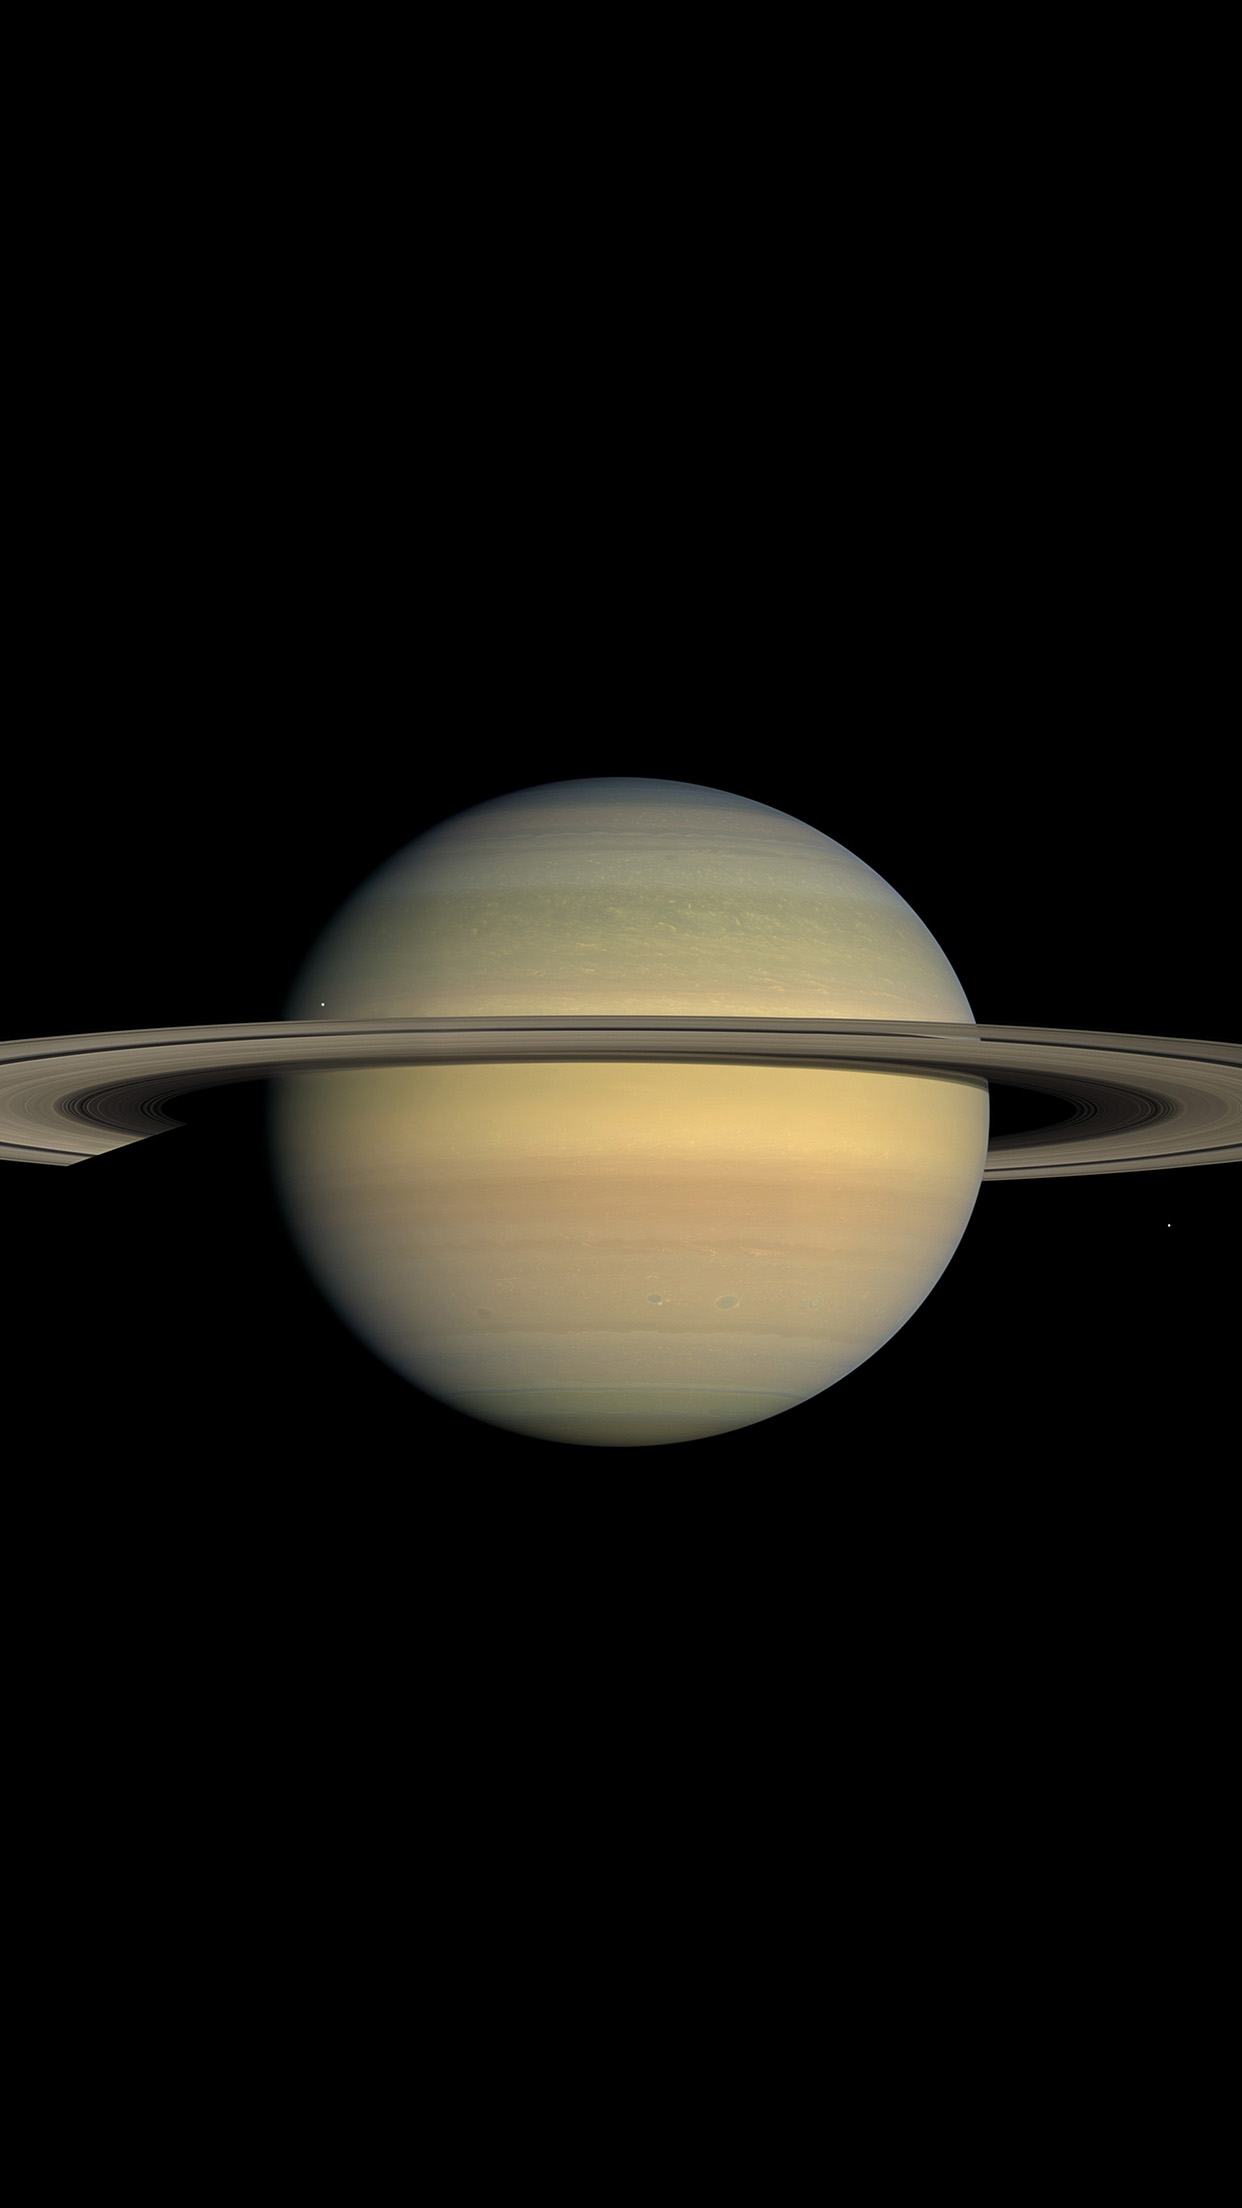 City Fall Desktop Wallpapers Papers Co Iphone Wallpaper As16 Saturn Space Star